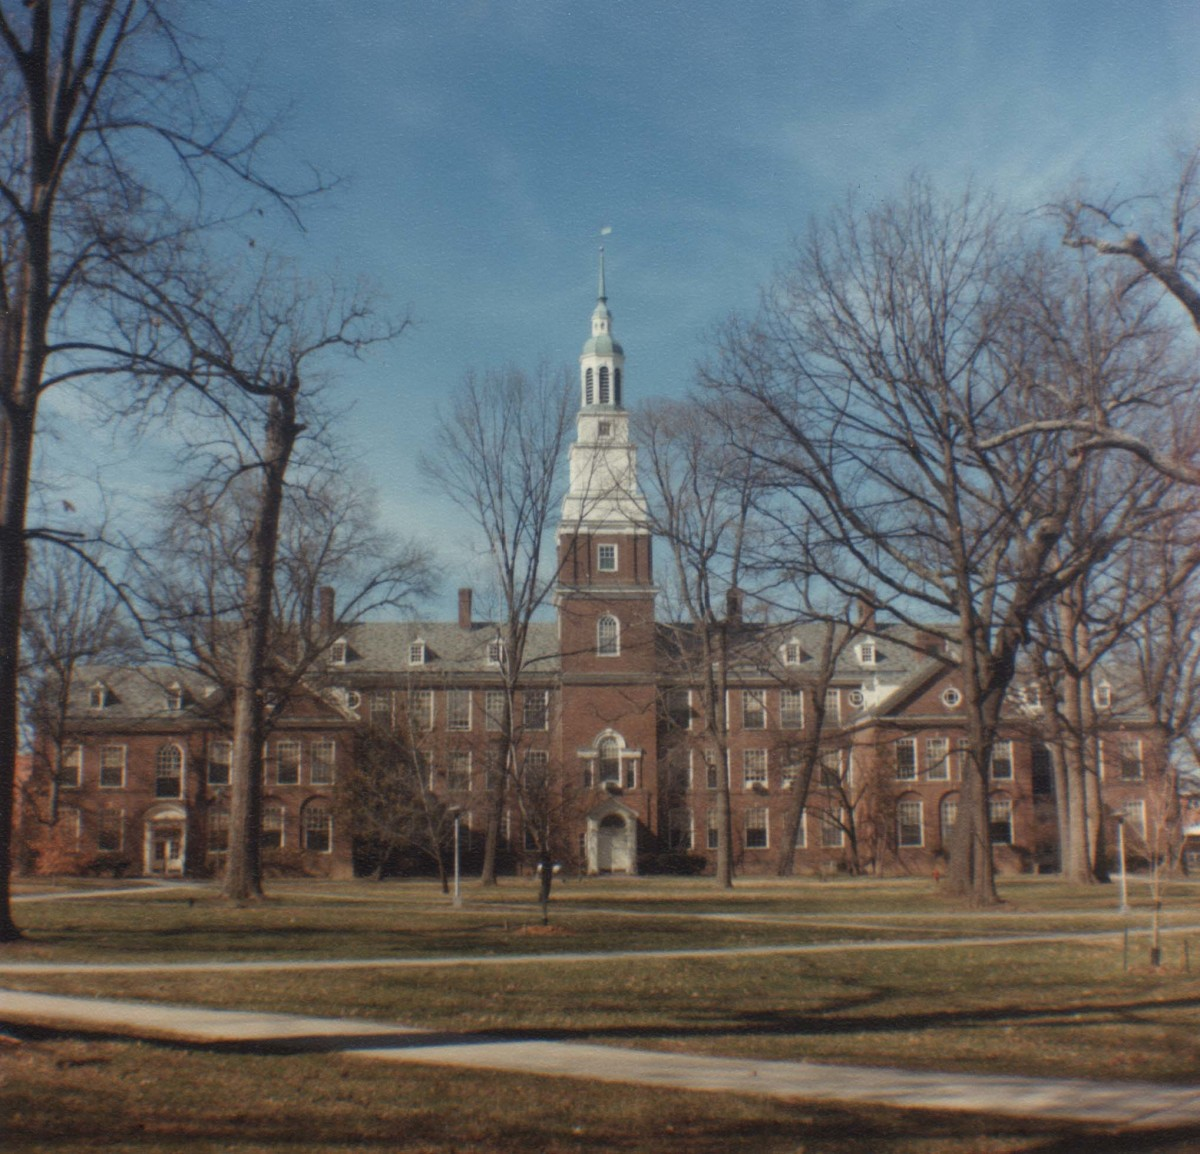 Draper building, modeled after Independence Hall in Philadelphia, is the main campus classroom building. It includes a built-in chapel, the exterior of which is embedded with stones from notable places throughout the world.